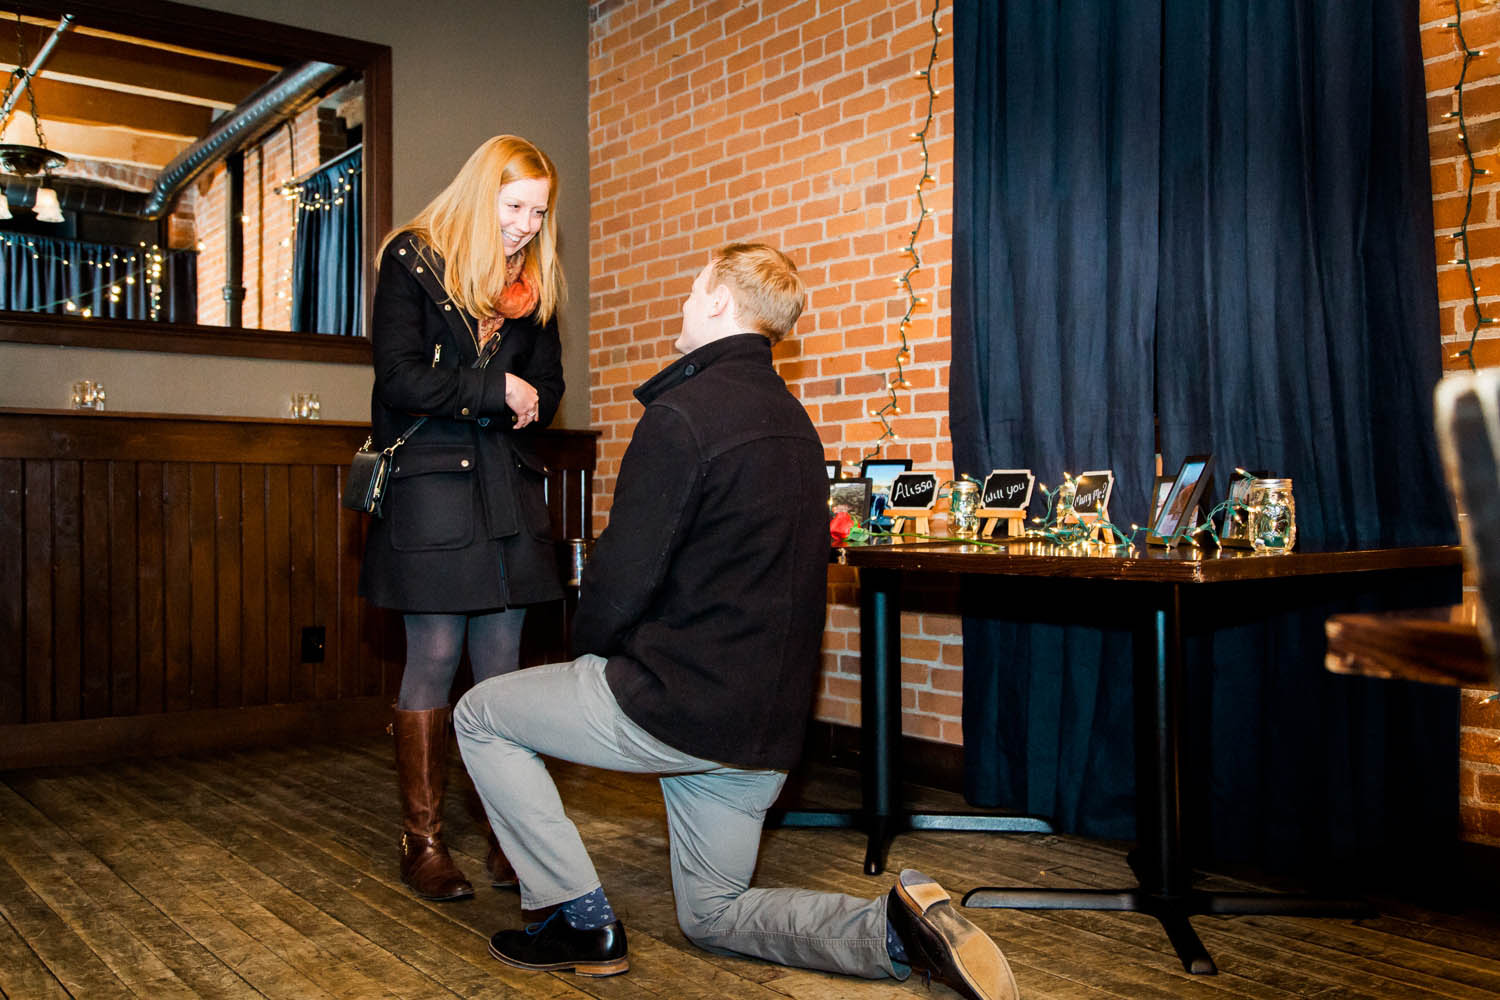 proposal-photos-minneapolis-bernadette-pollard-0011.jpg